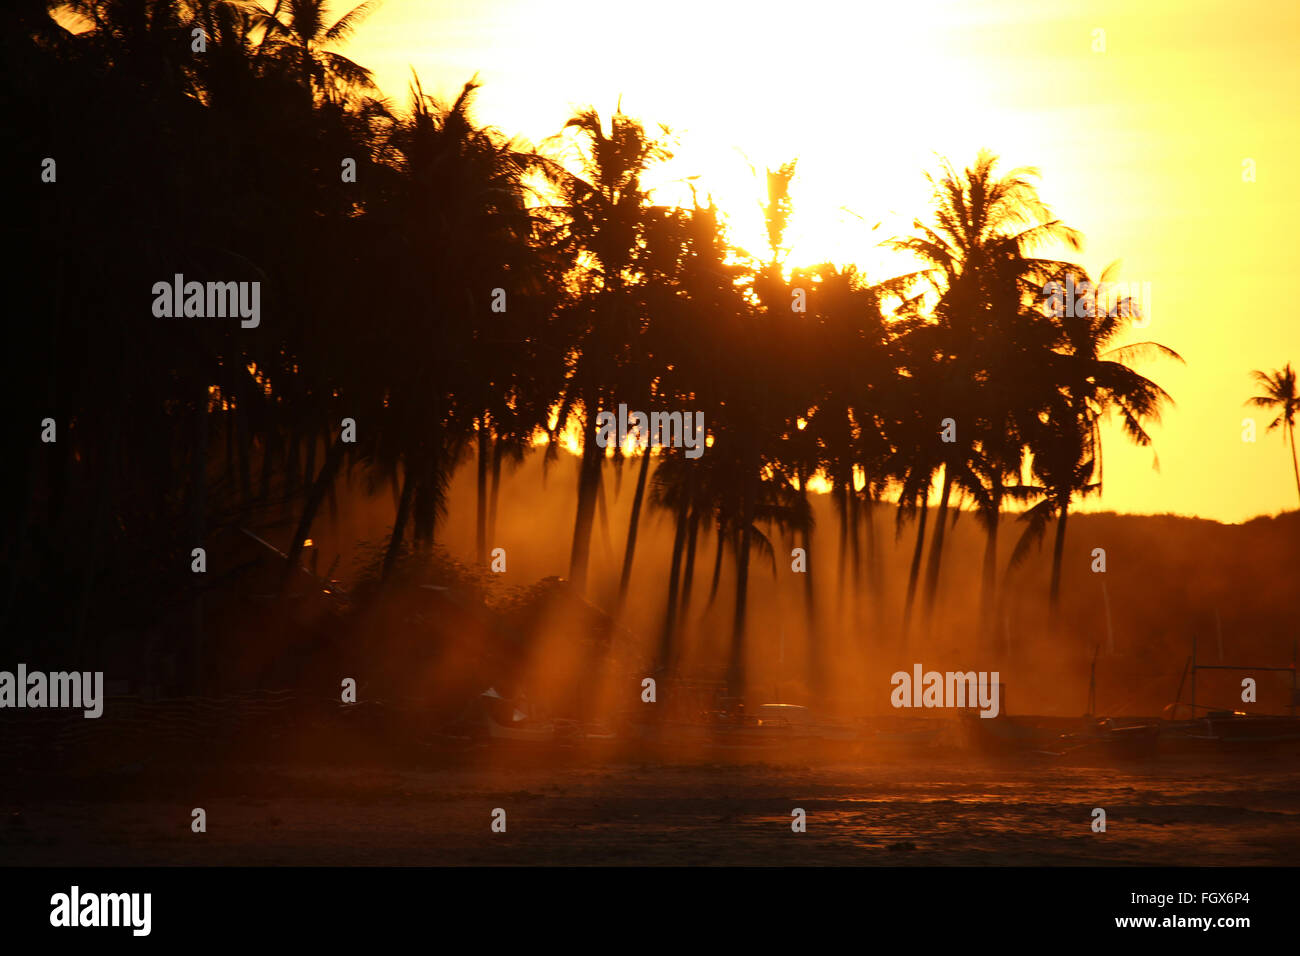 Mystical orange sunset with palms in the back light at Nacpan beach - Stock Image